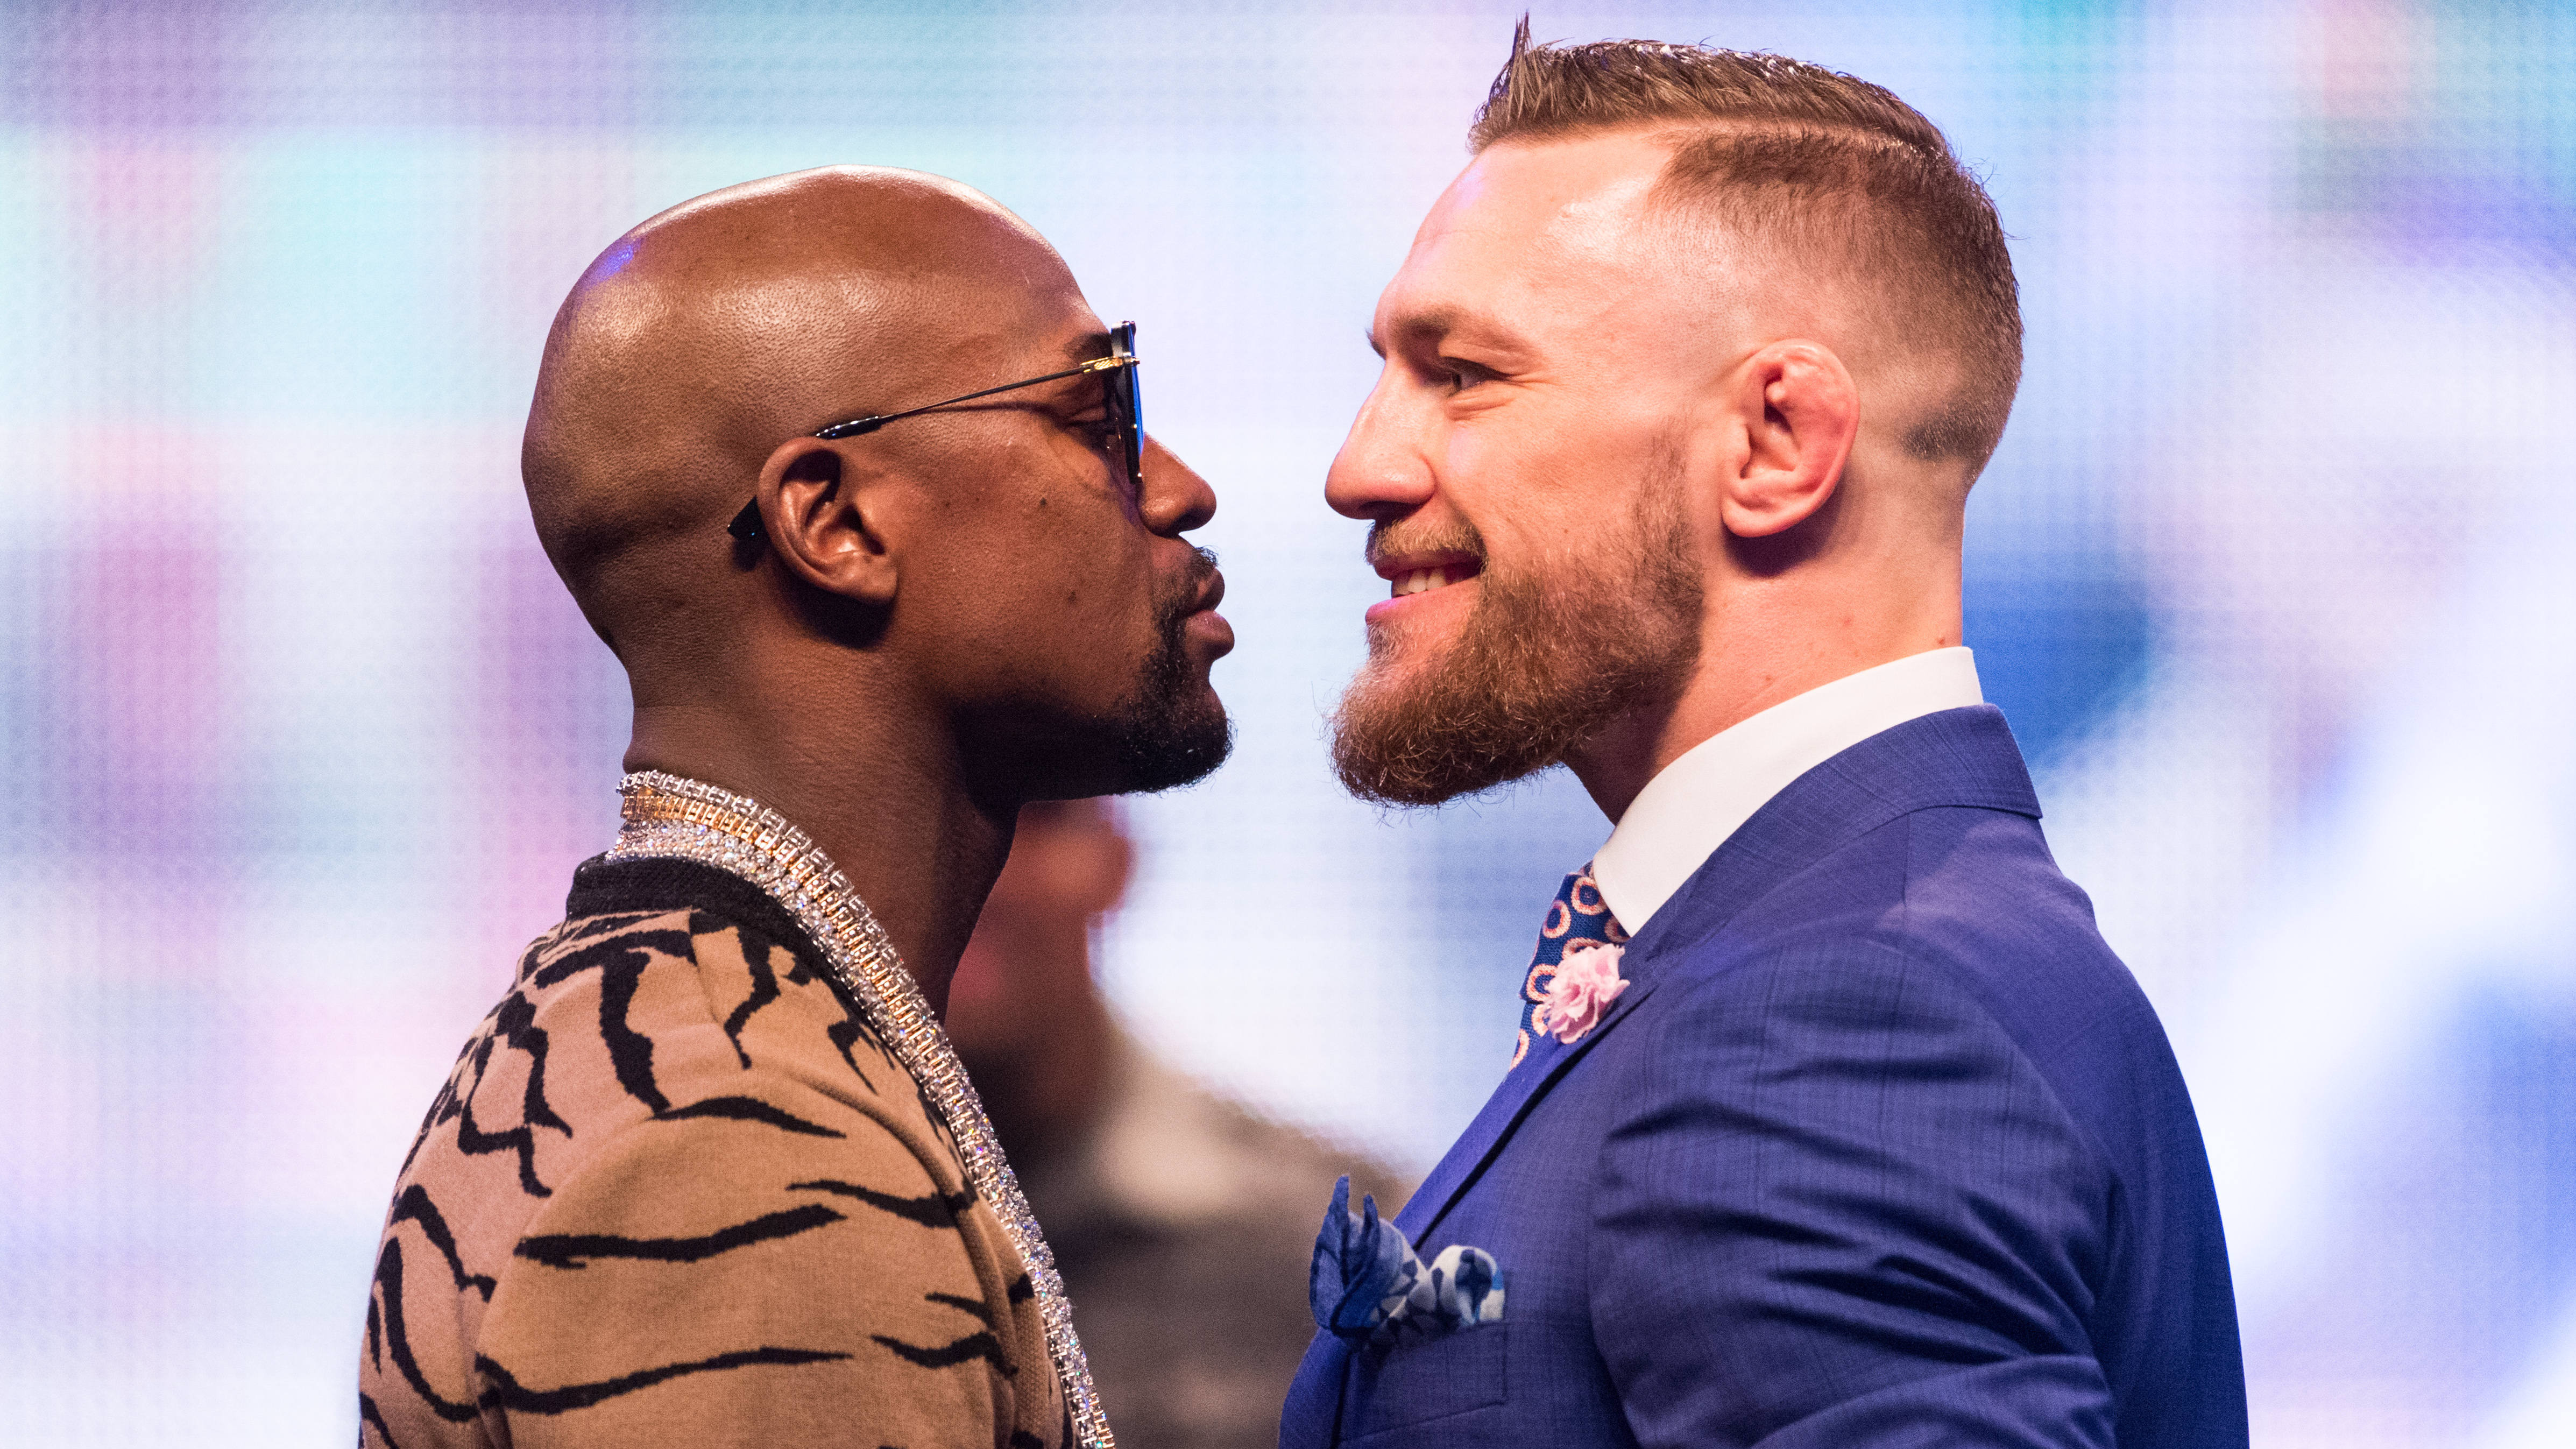 Conor McGregor's Insane Bet For His Fight With Floyd Mayweather